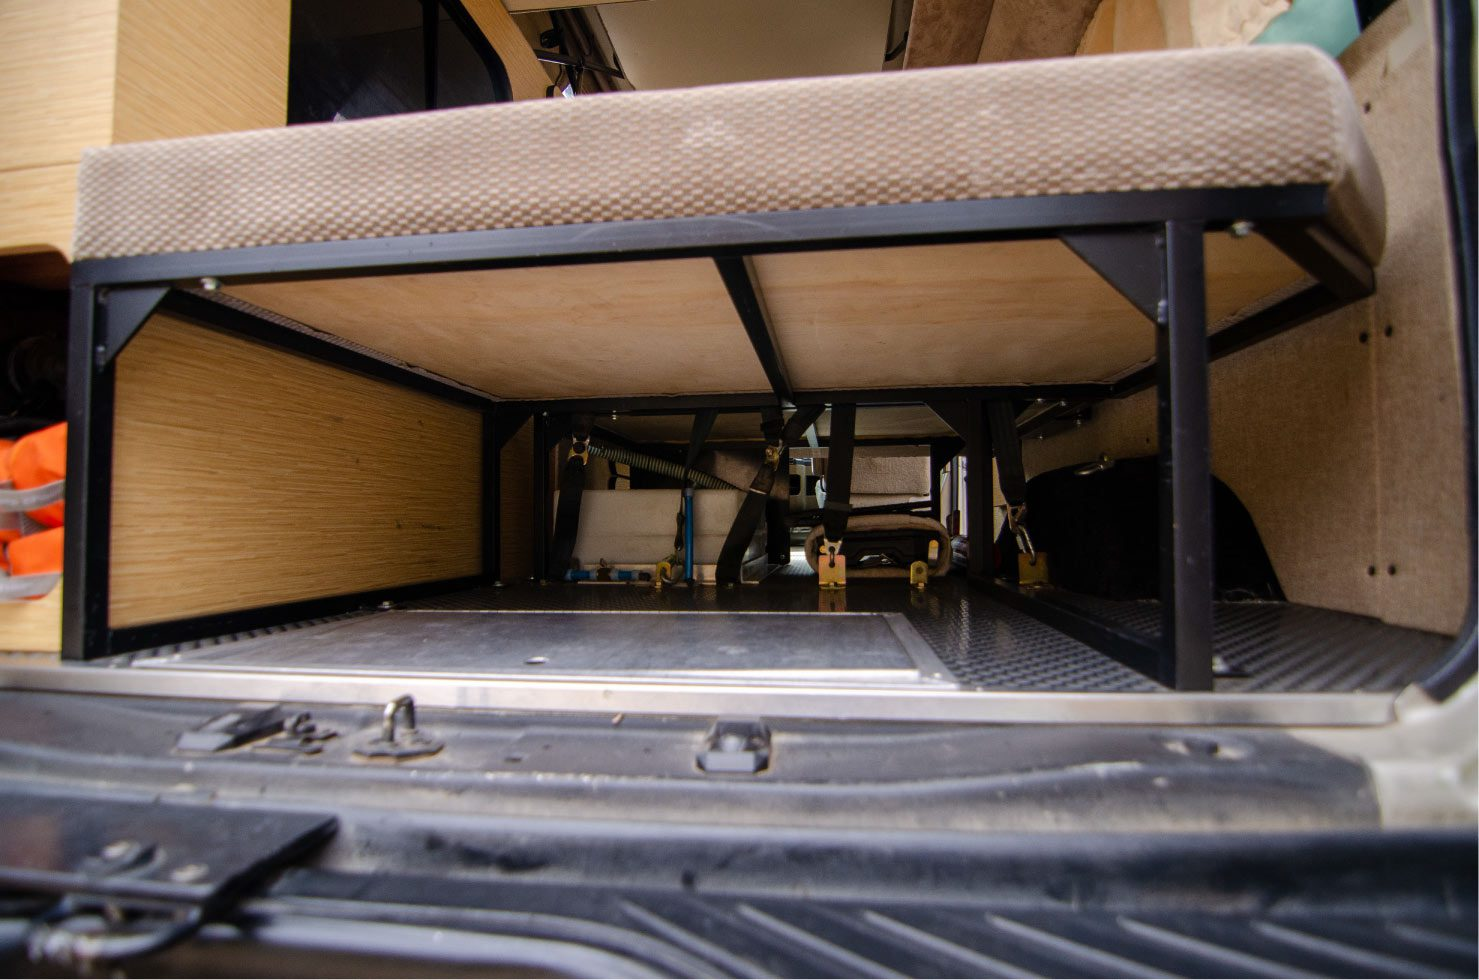 rear view of under sofa bed in a 4wd Sportsmobileon a Ford E-Series 4x4 Econoline Sportsmobile RB50 Layout Campervan conversion for sale built by Van Specialties